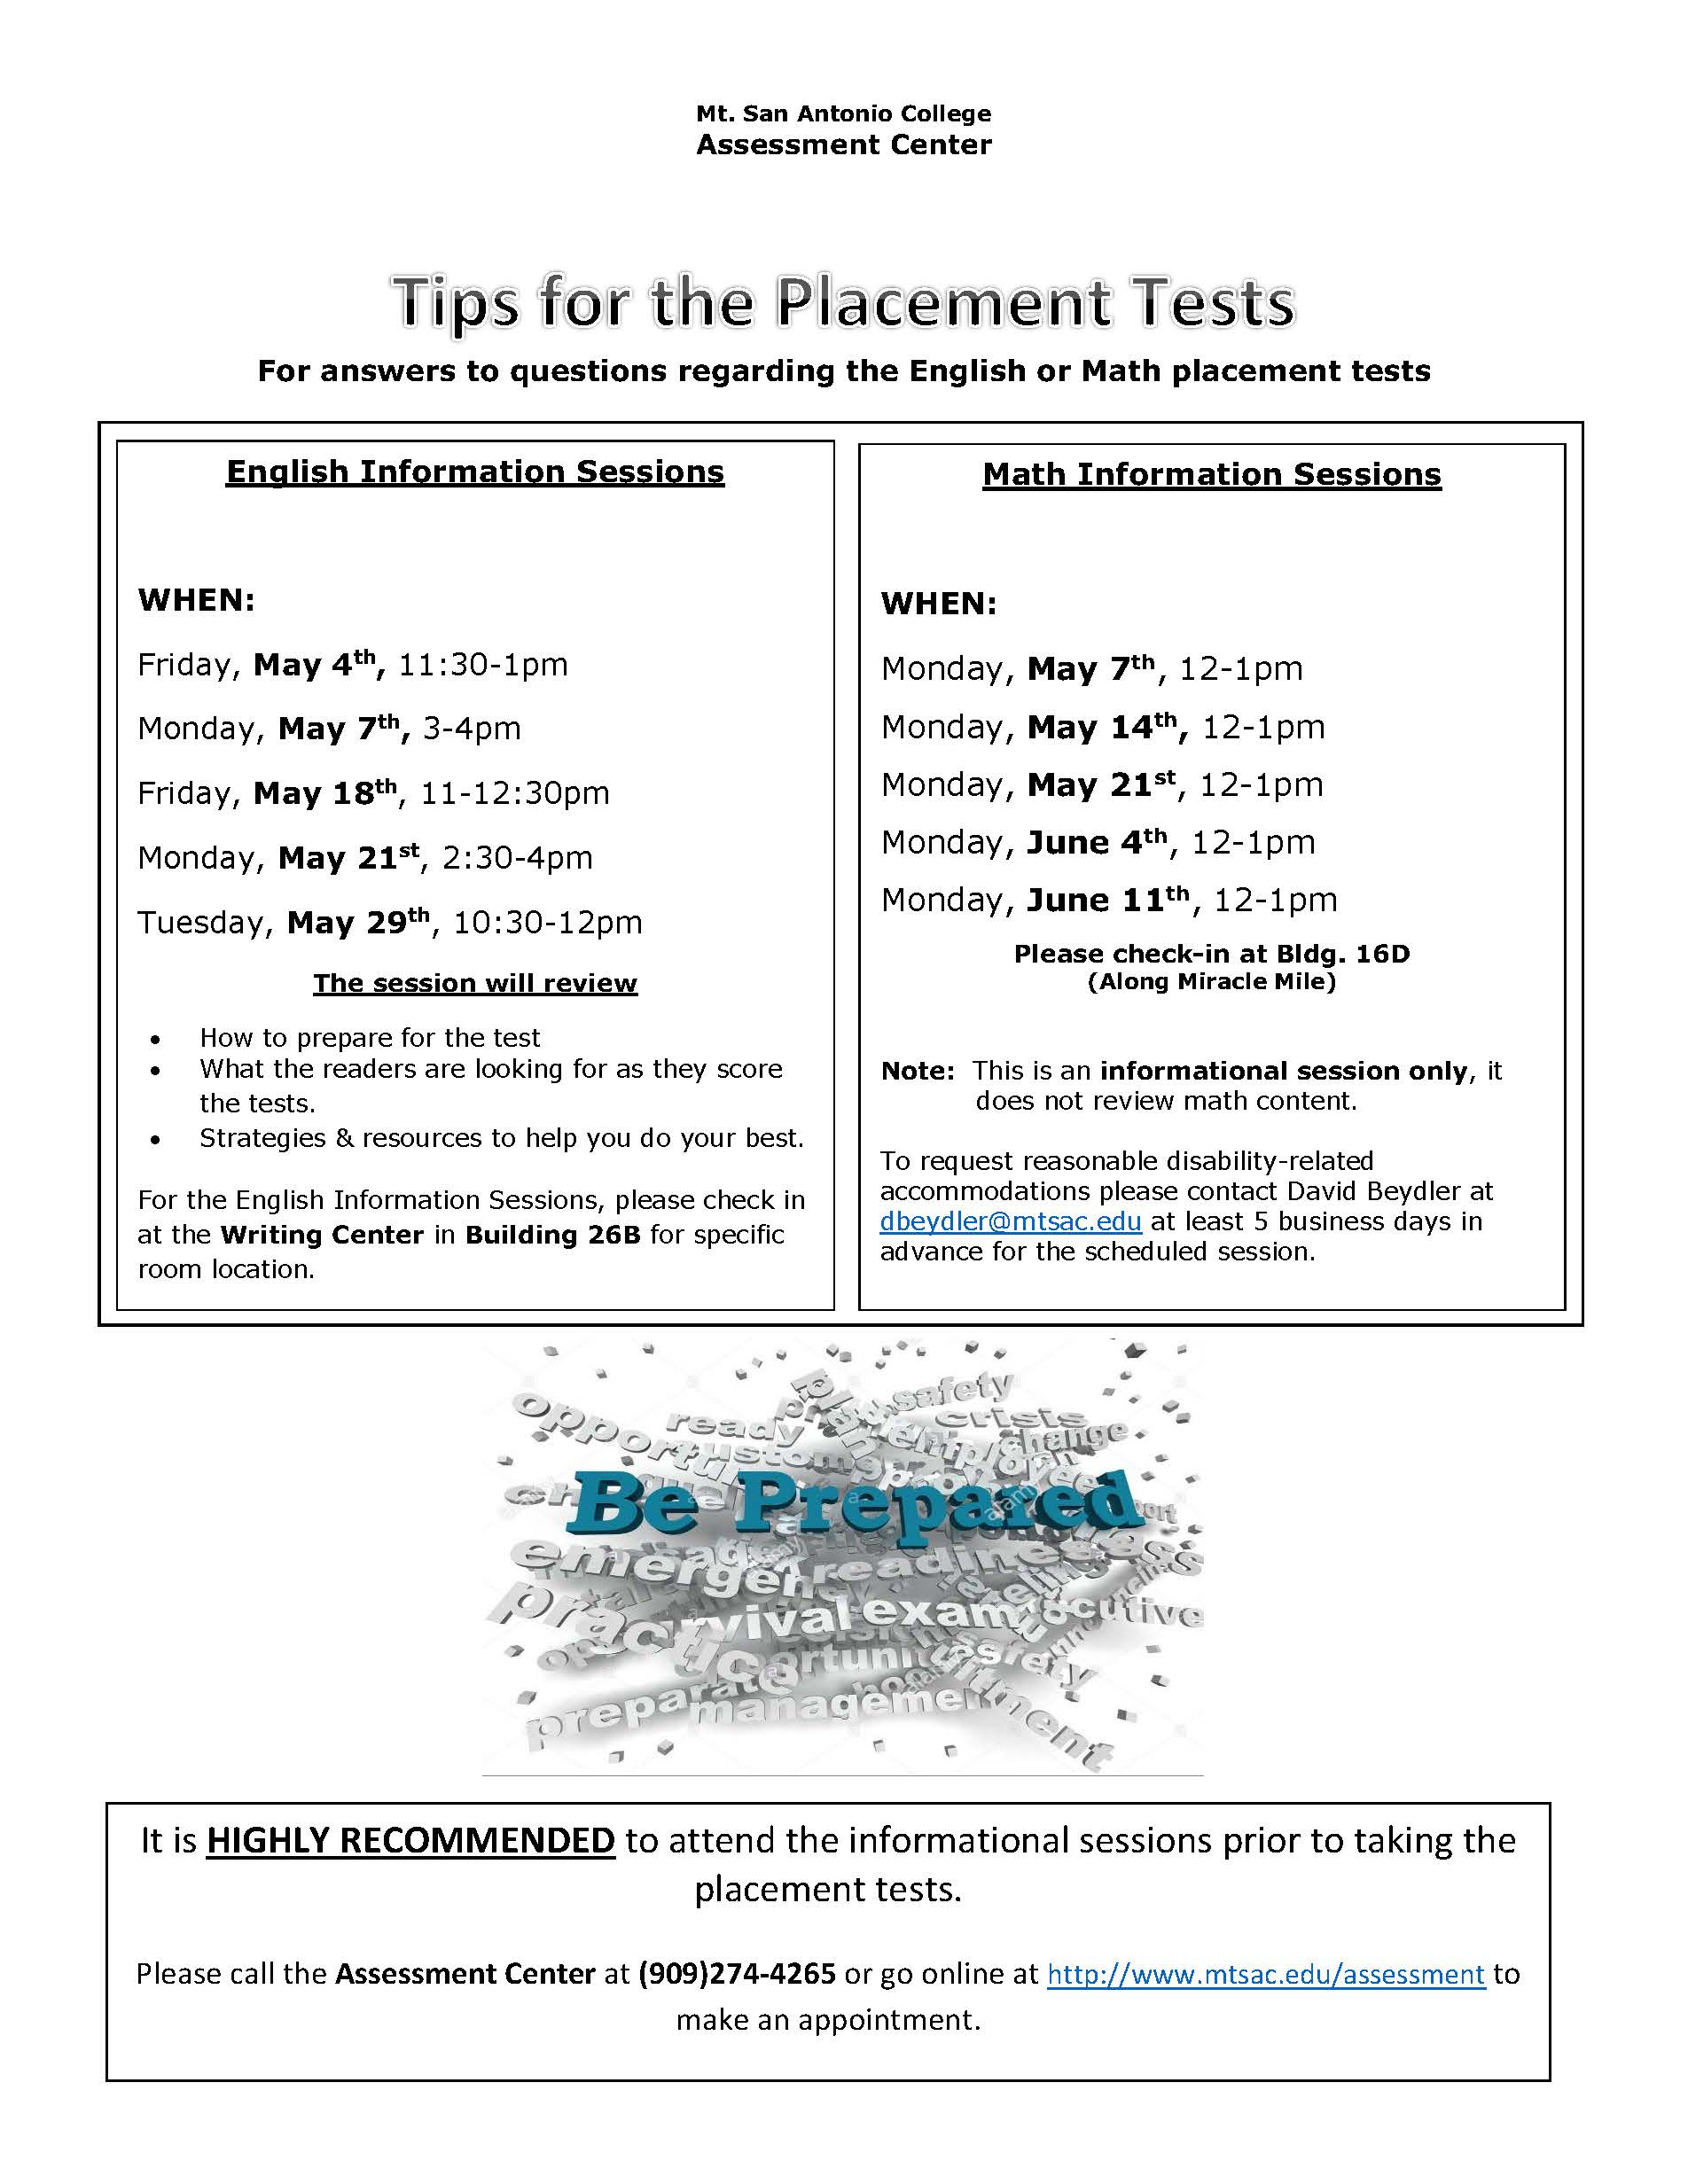 Test Info Session Flyer-Date & Time